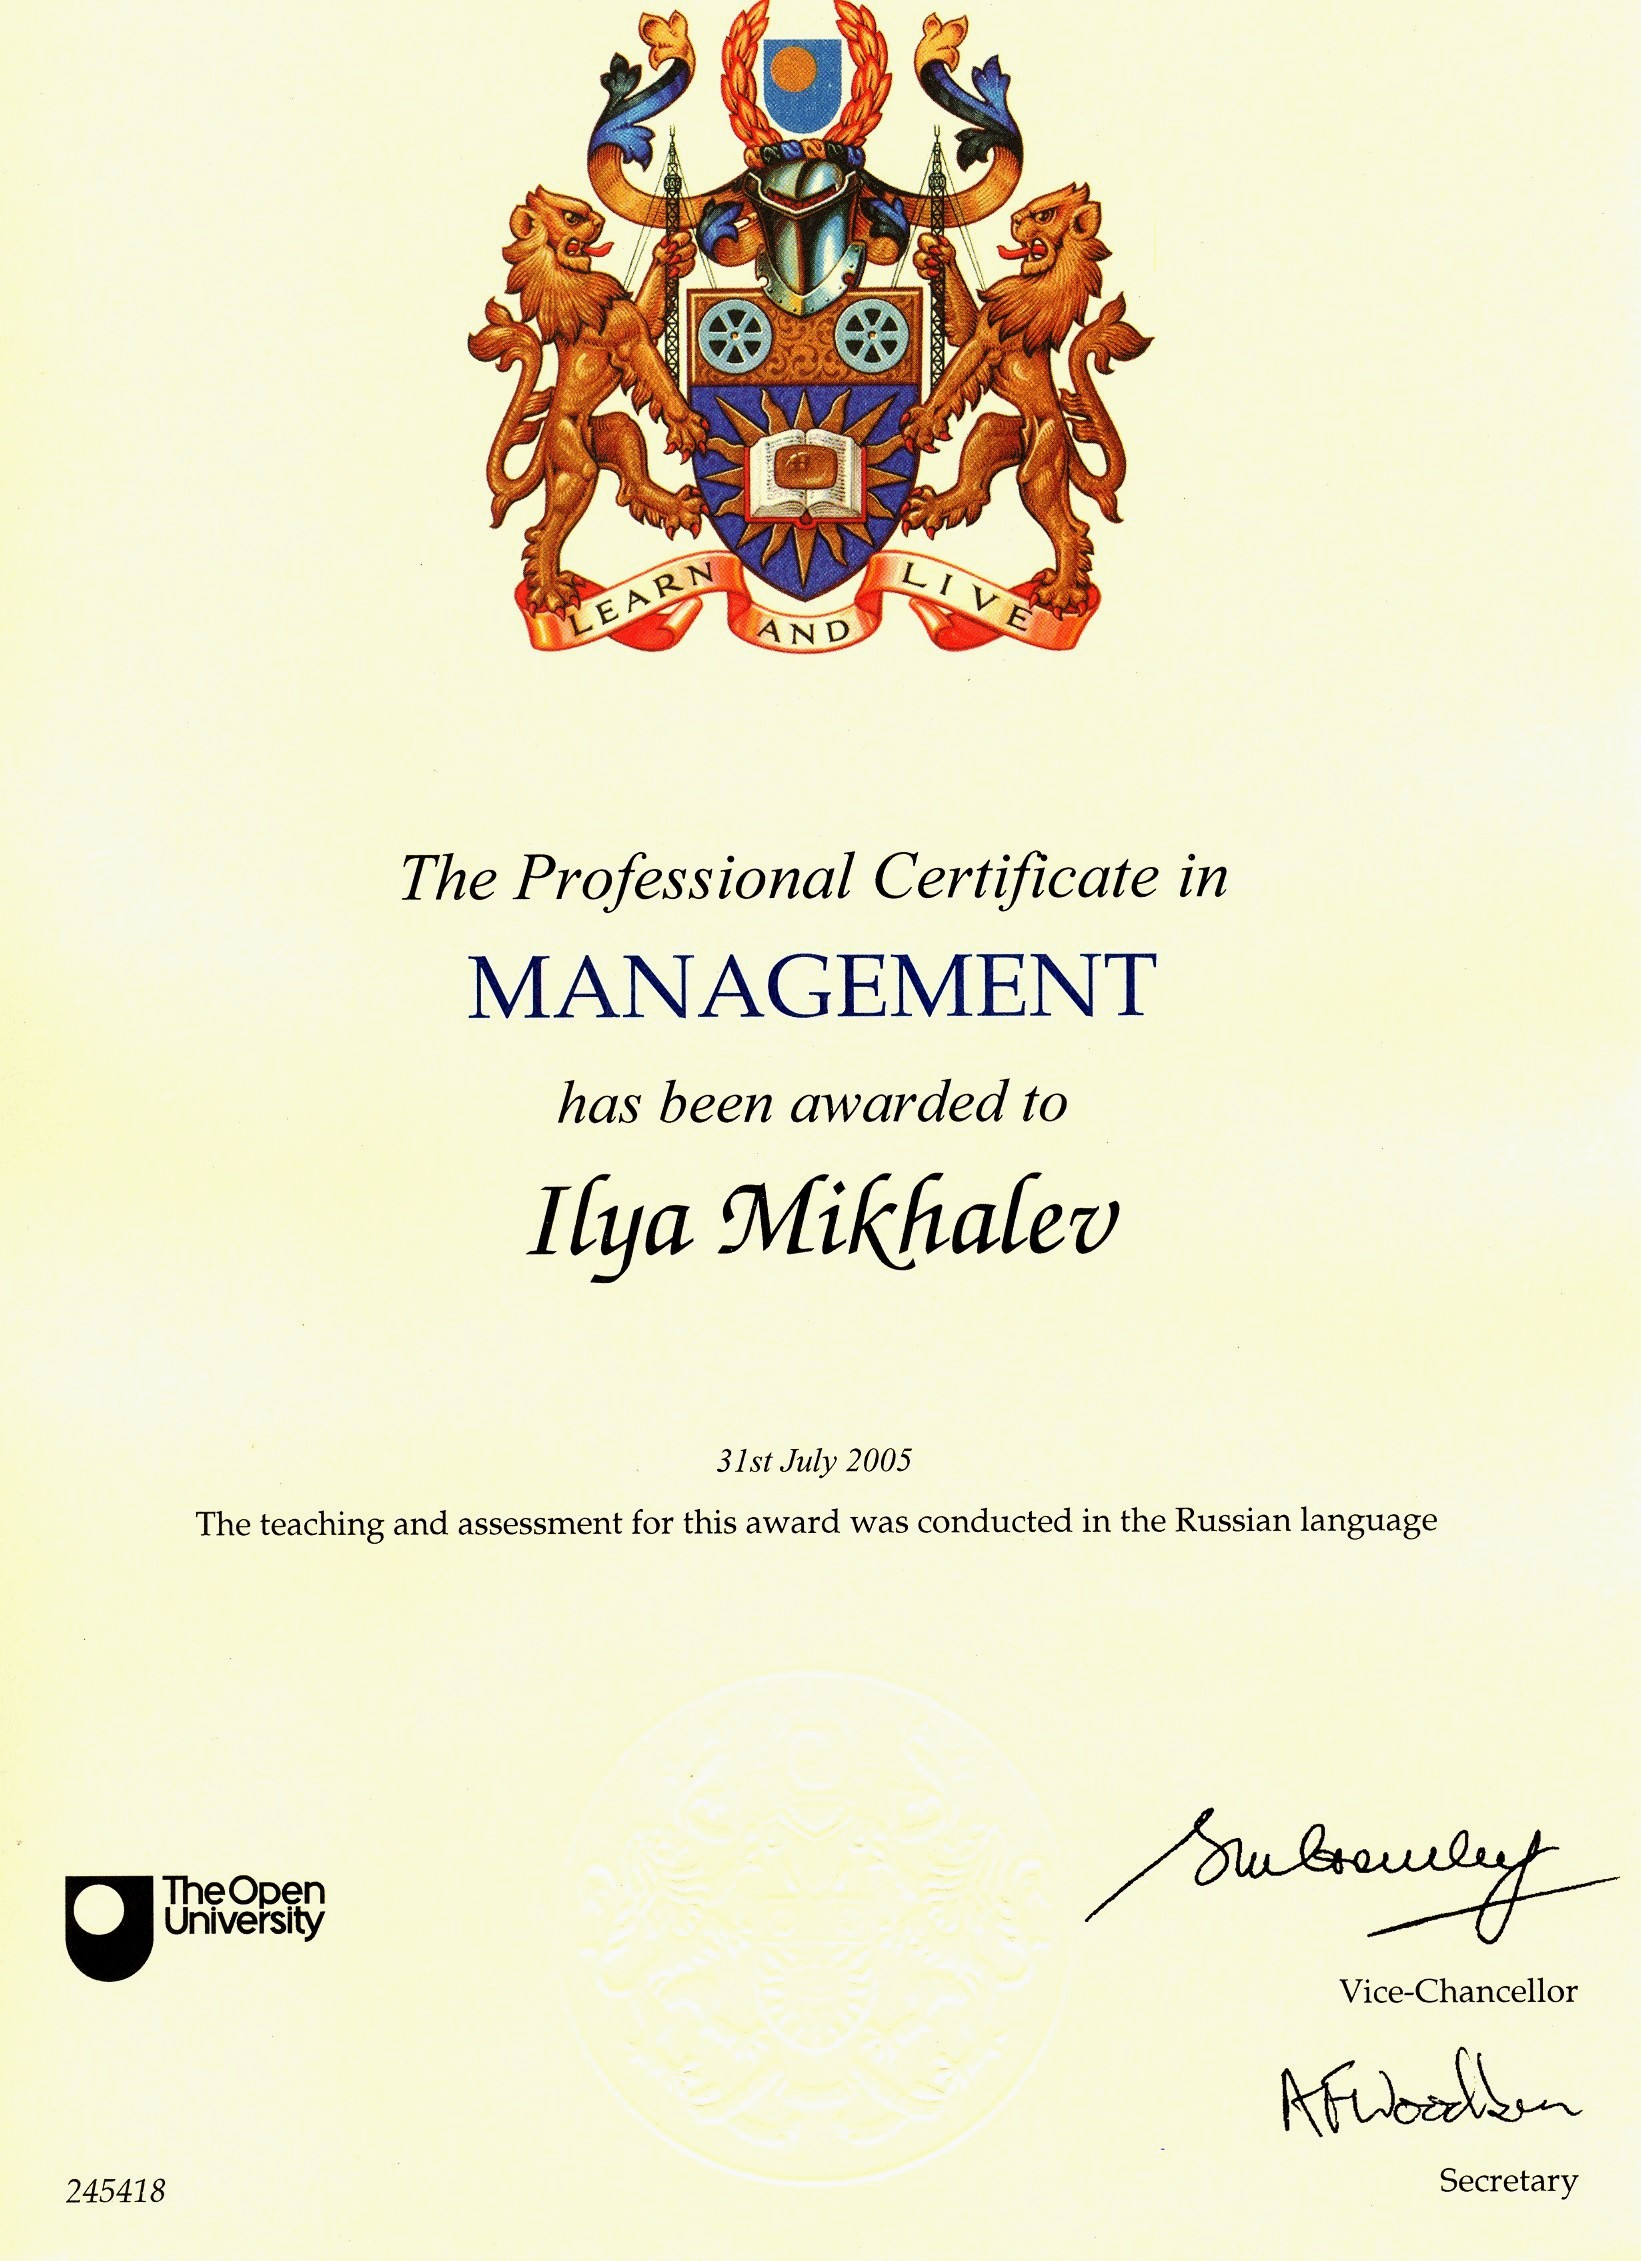 2005 BZR630_Certificate in Management